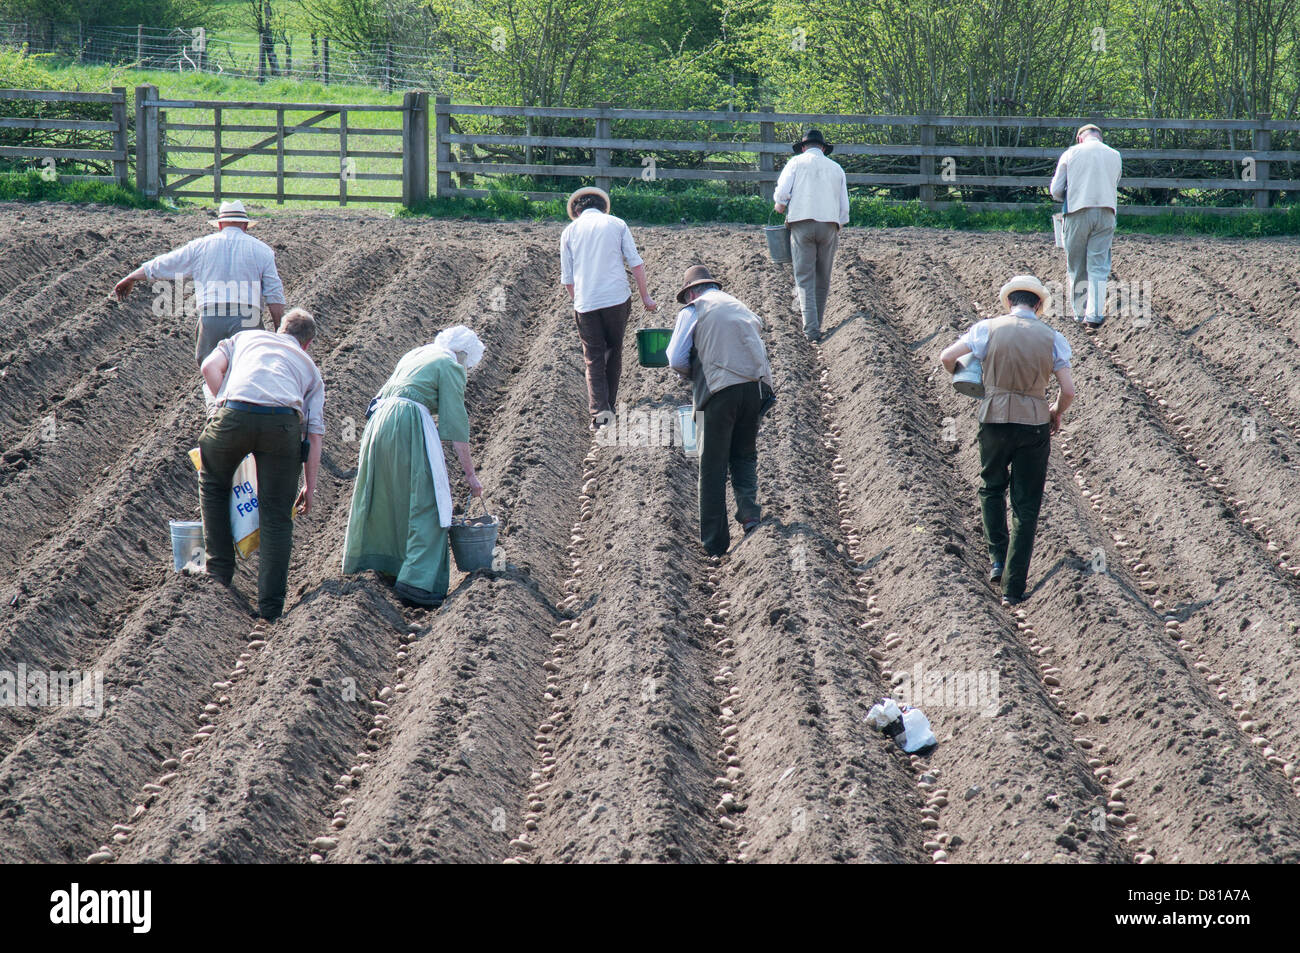 People Planting potatoes by hand in a field Beamish Museum north east England UK Stock Photo